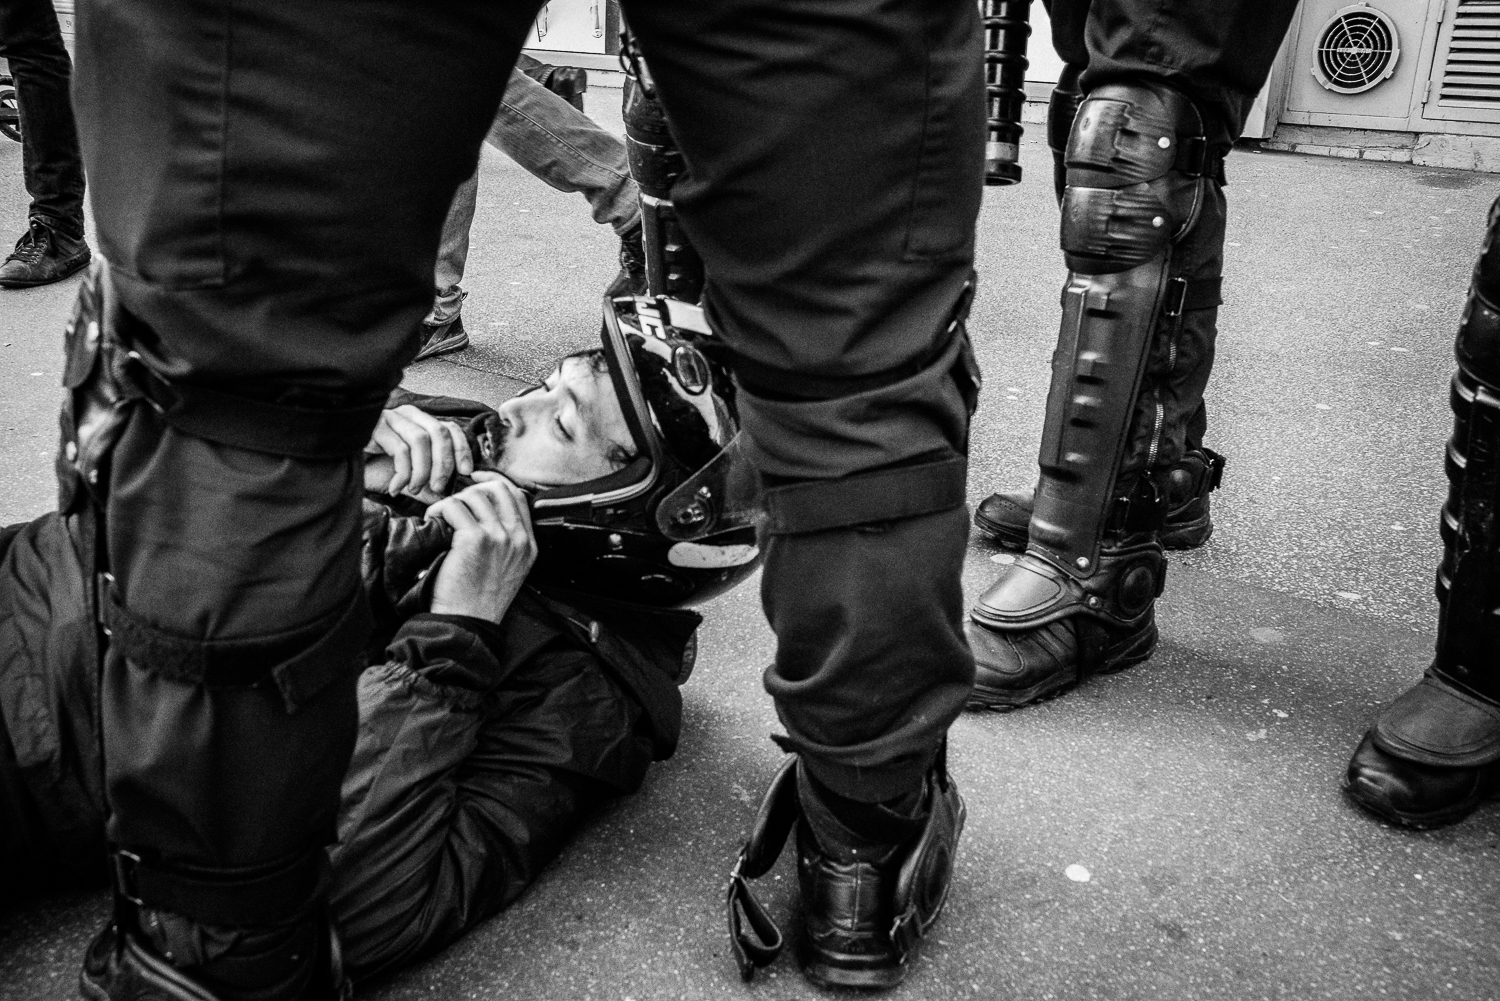 Another protester being apprehended and surrounded by the riot police,5th April 2016.